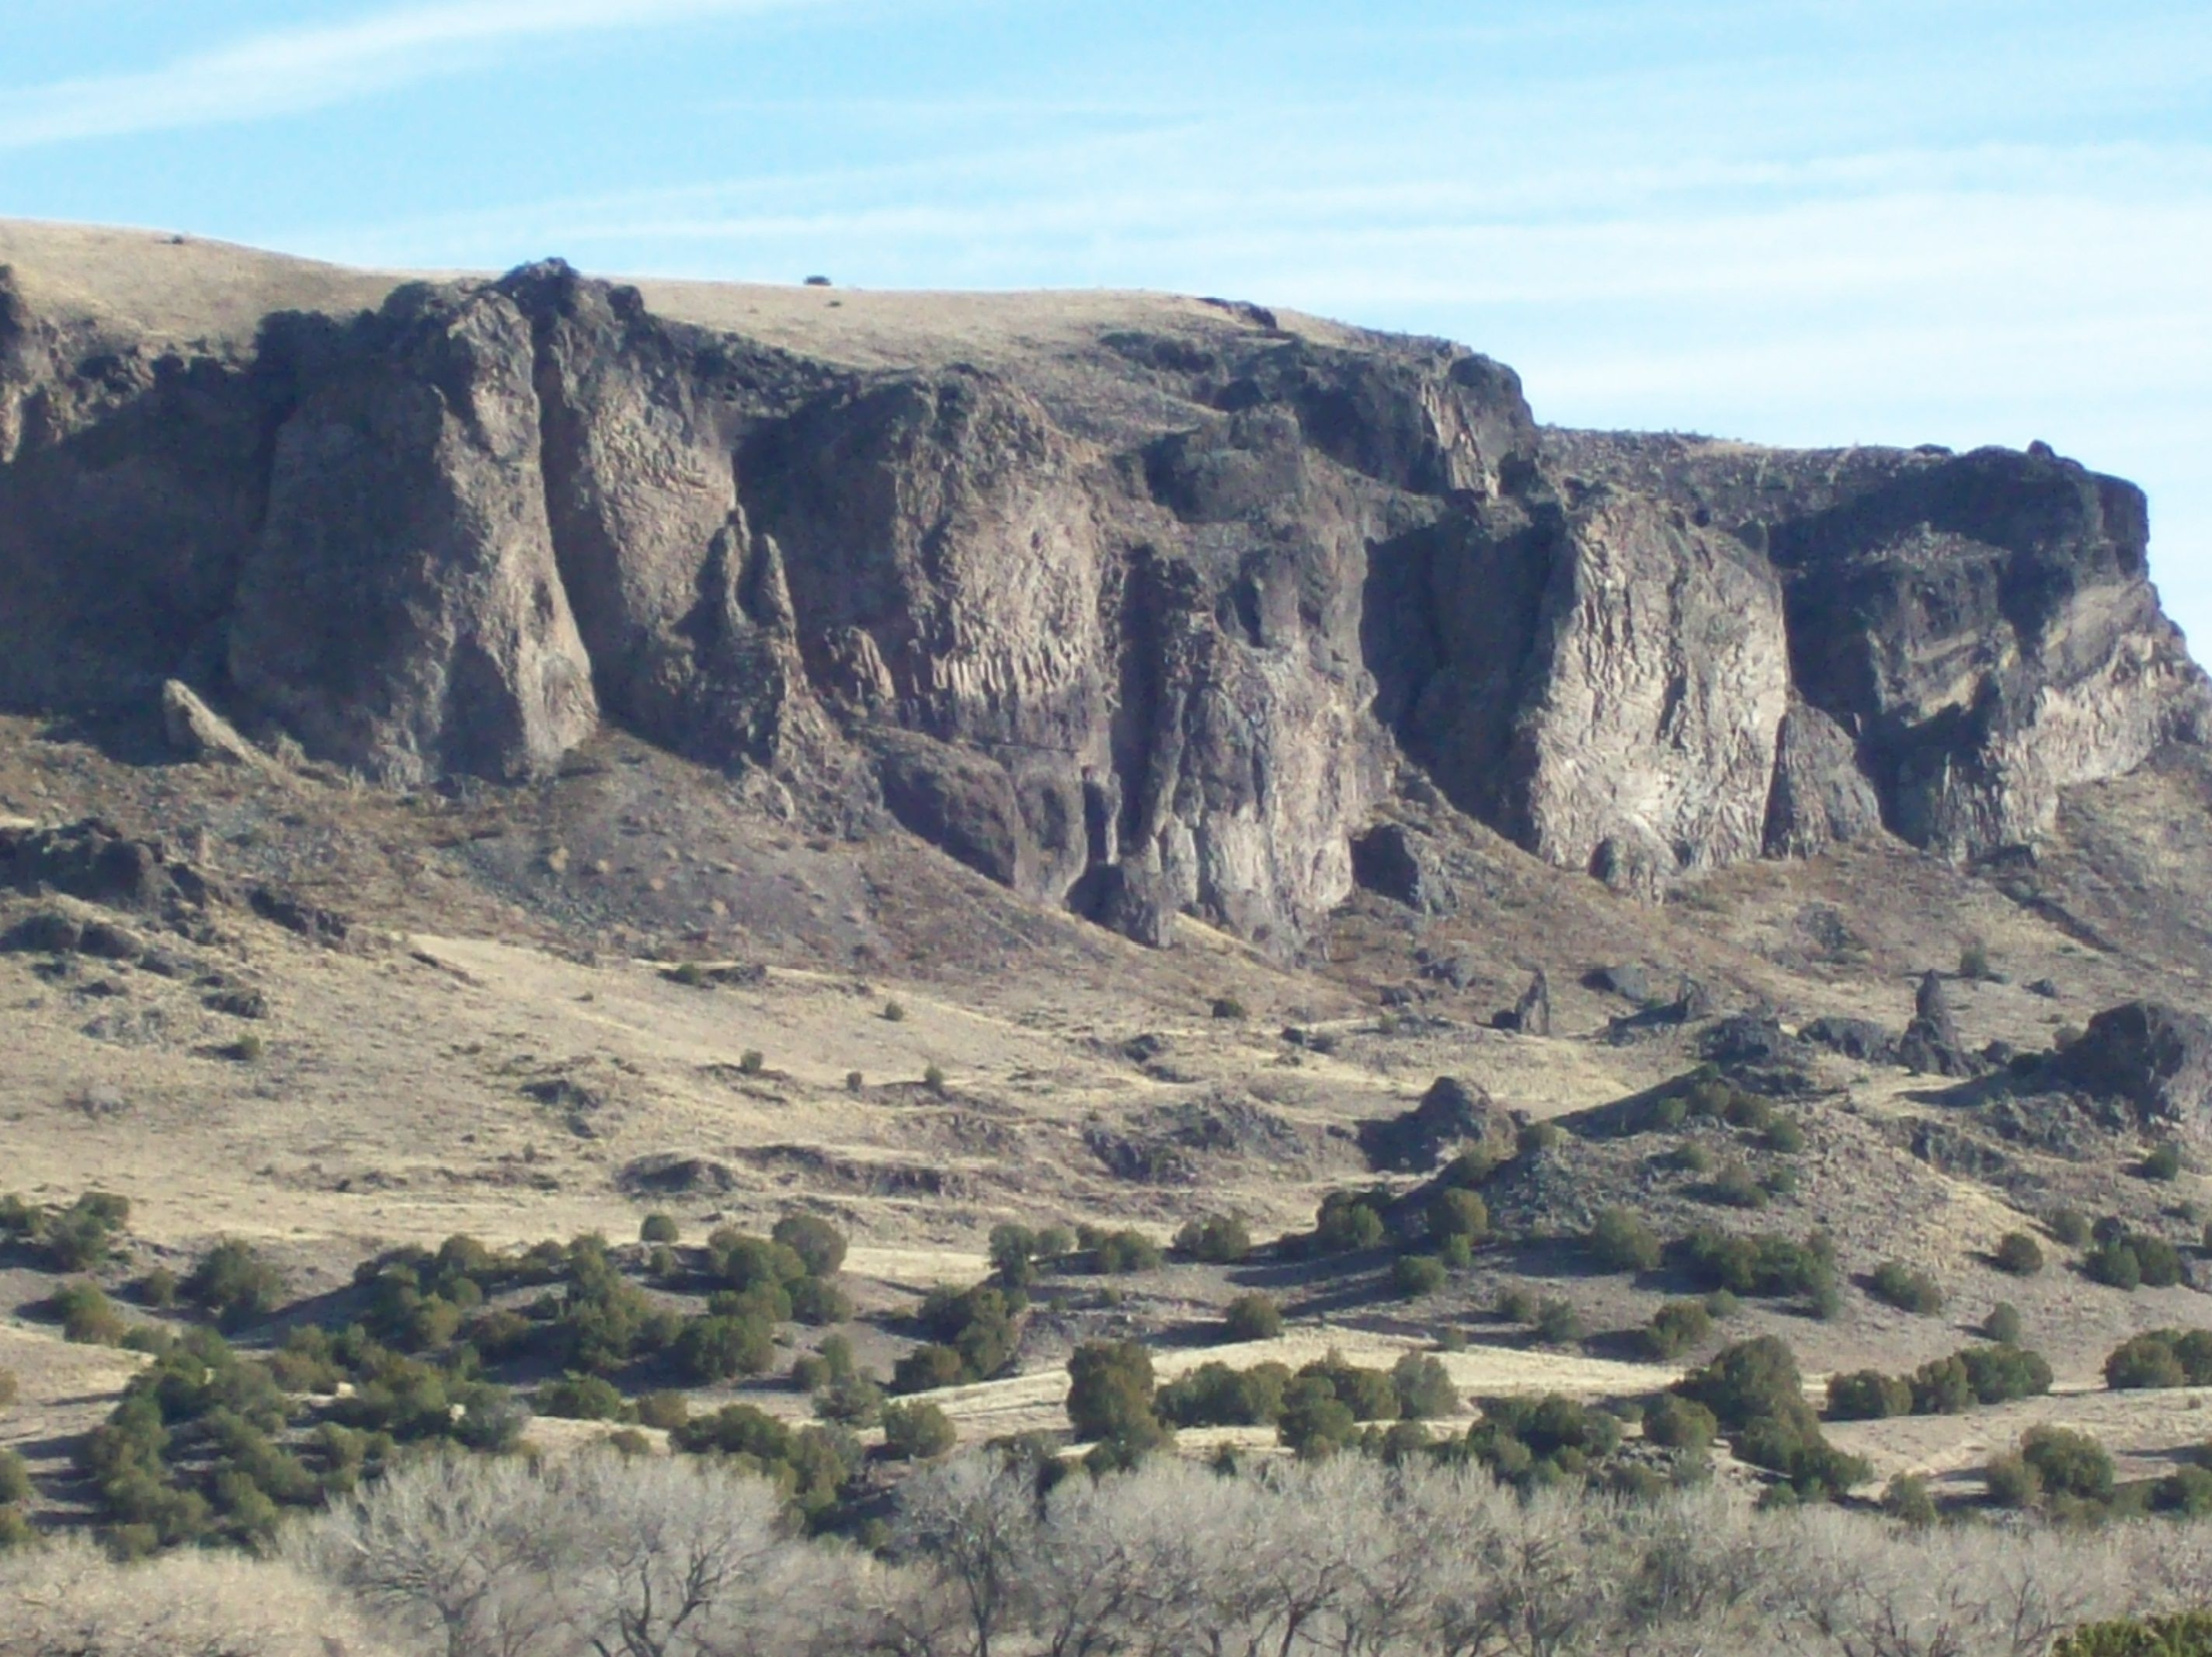 Black Mesa, on the way to Espanola, NM